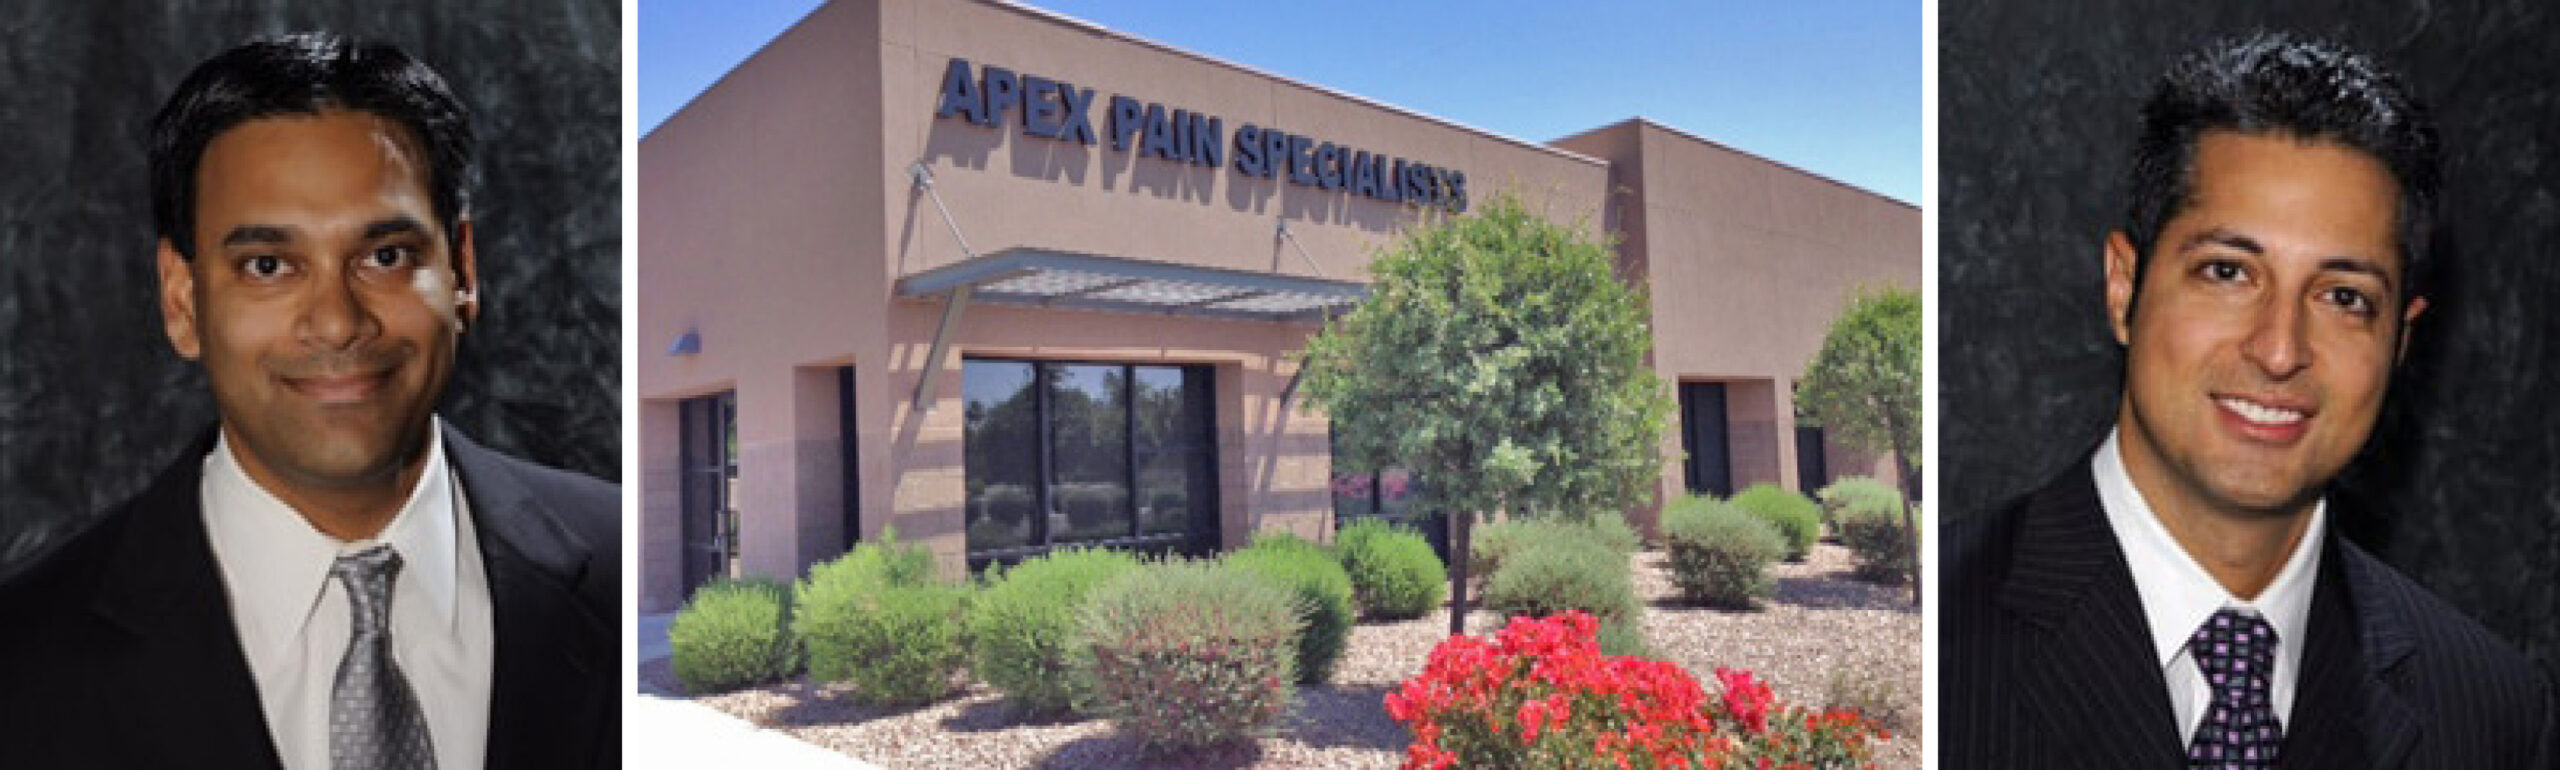 Apex Pain Specialists is one of the best!